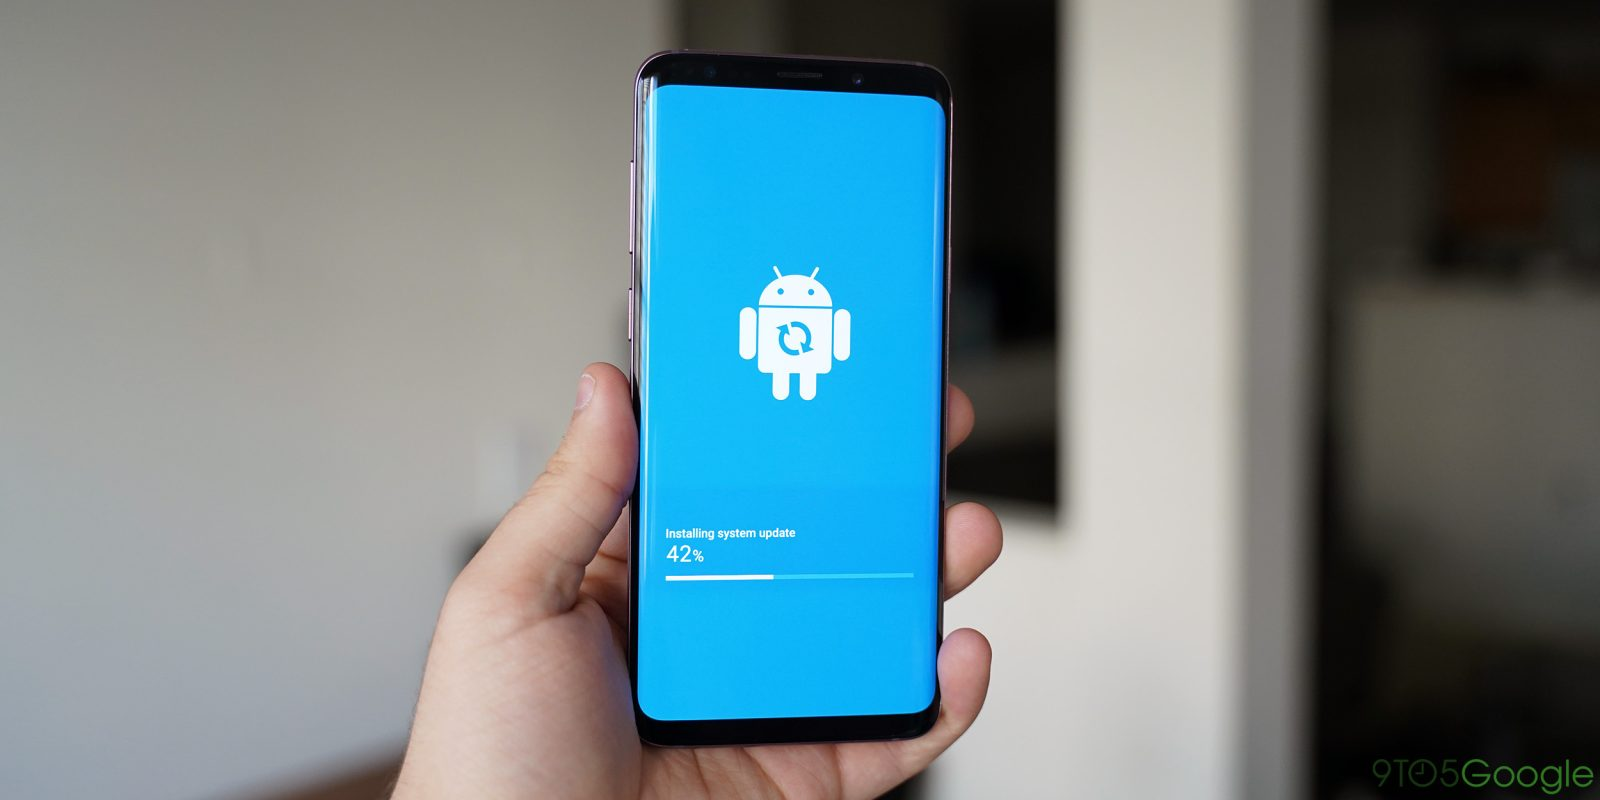 Samsung One UI beta 2 update hits Galaxy S9 w/ many fixes